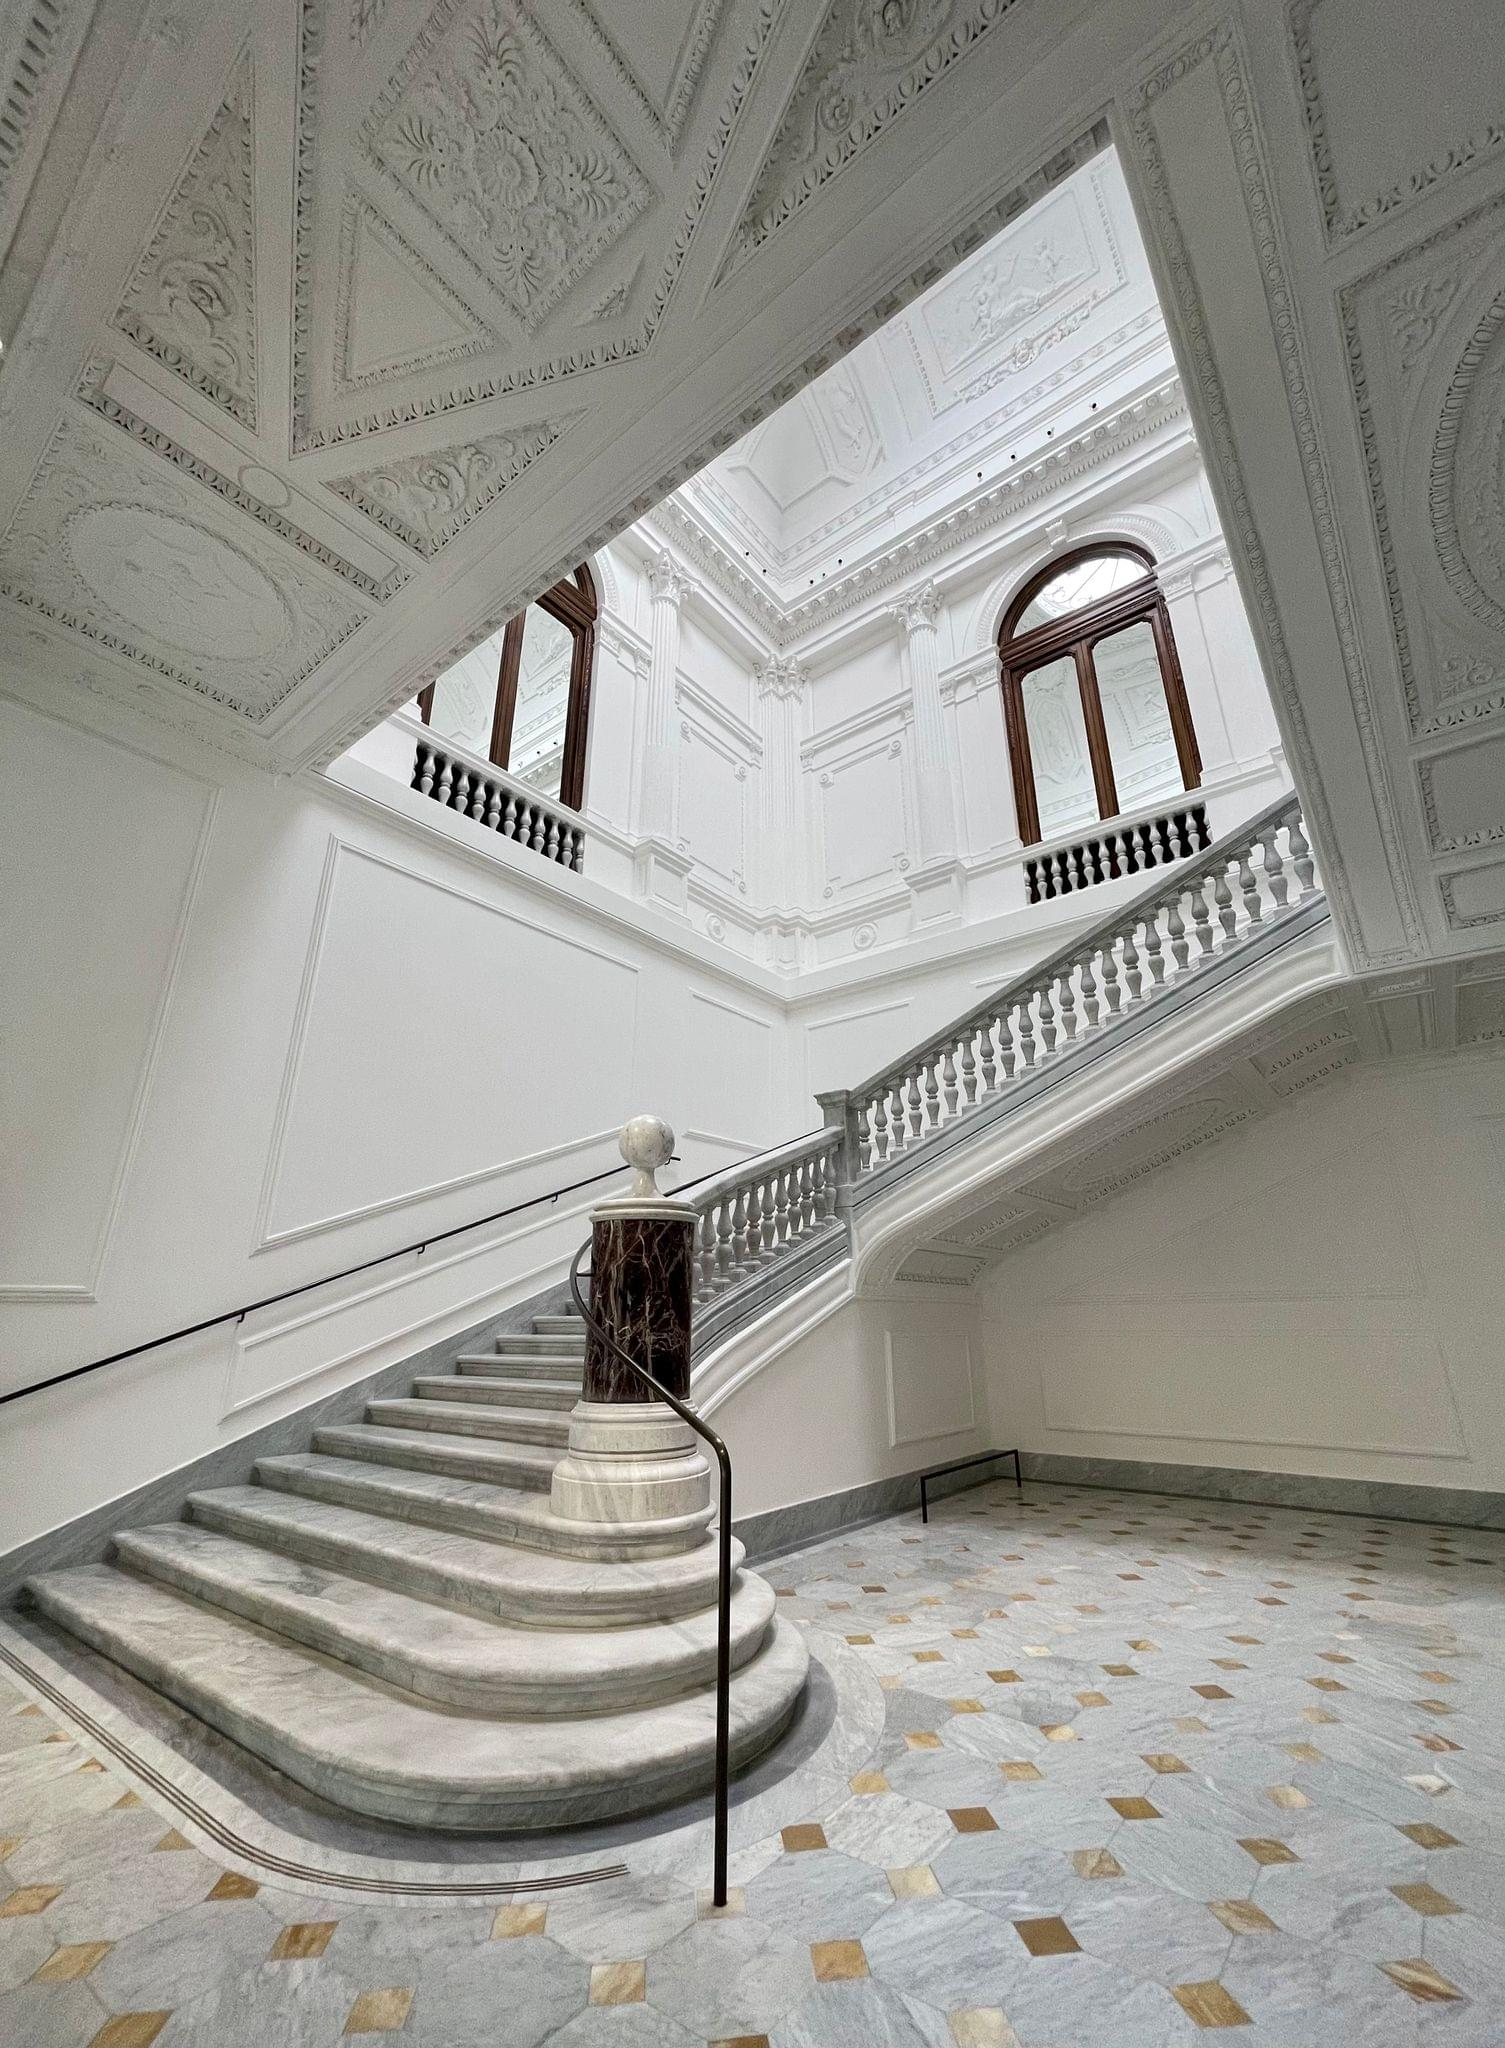 The monumental staircase that takes you to the upper floor. Captured with the iPhone 12 Pro Max's ultra-wide camera.